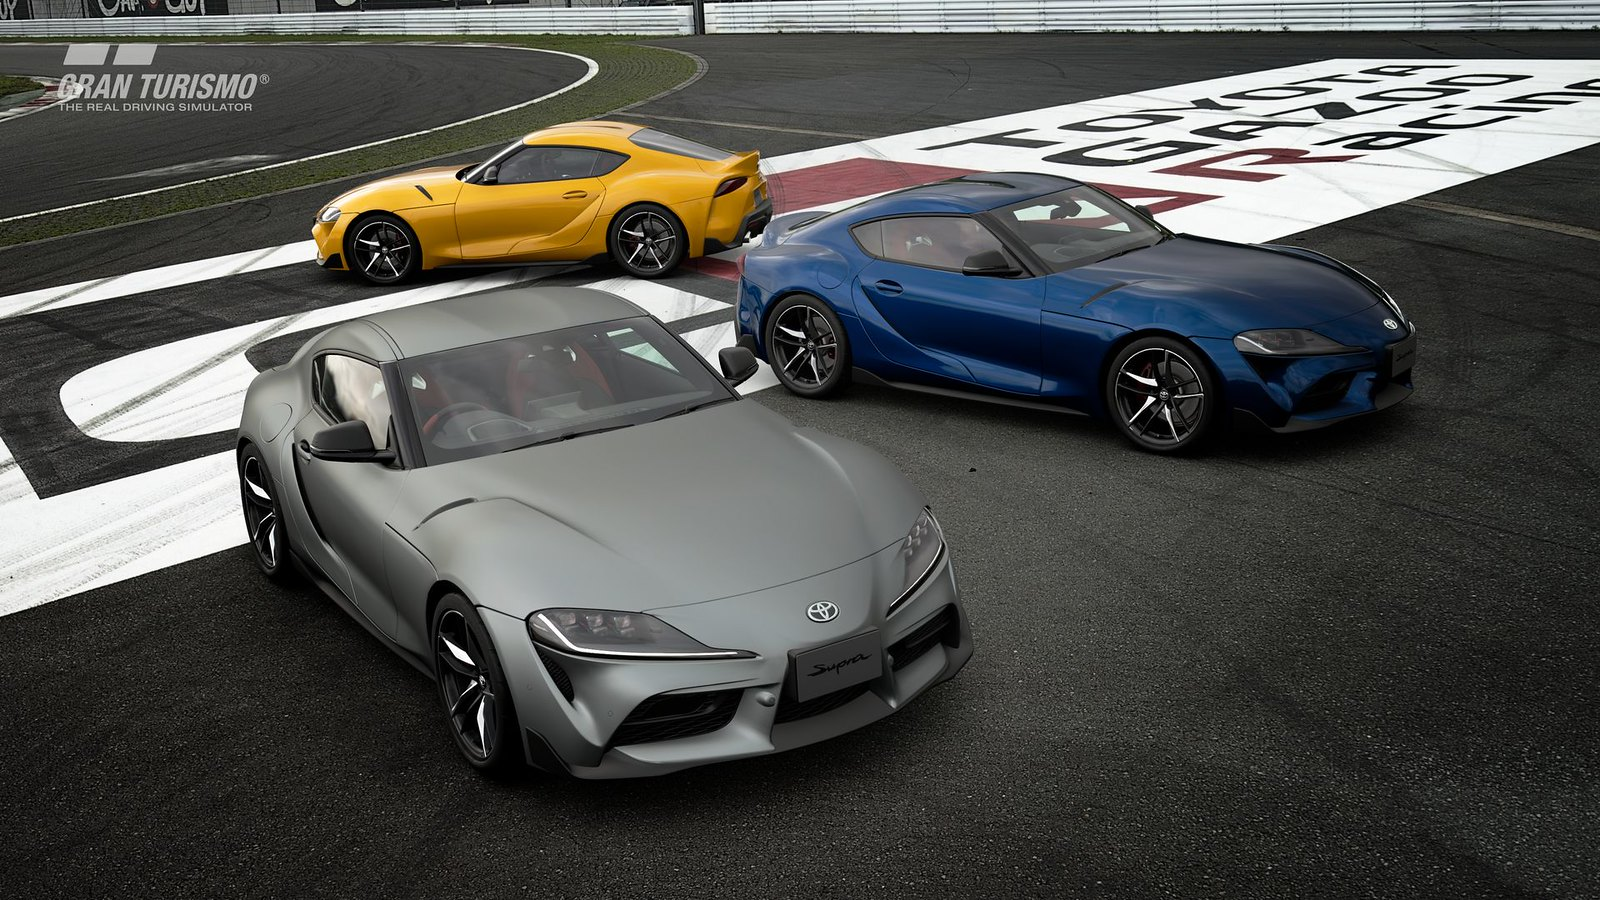 GT Sport Update Out Today: Toyota GR Supra RZ '19, New Track